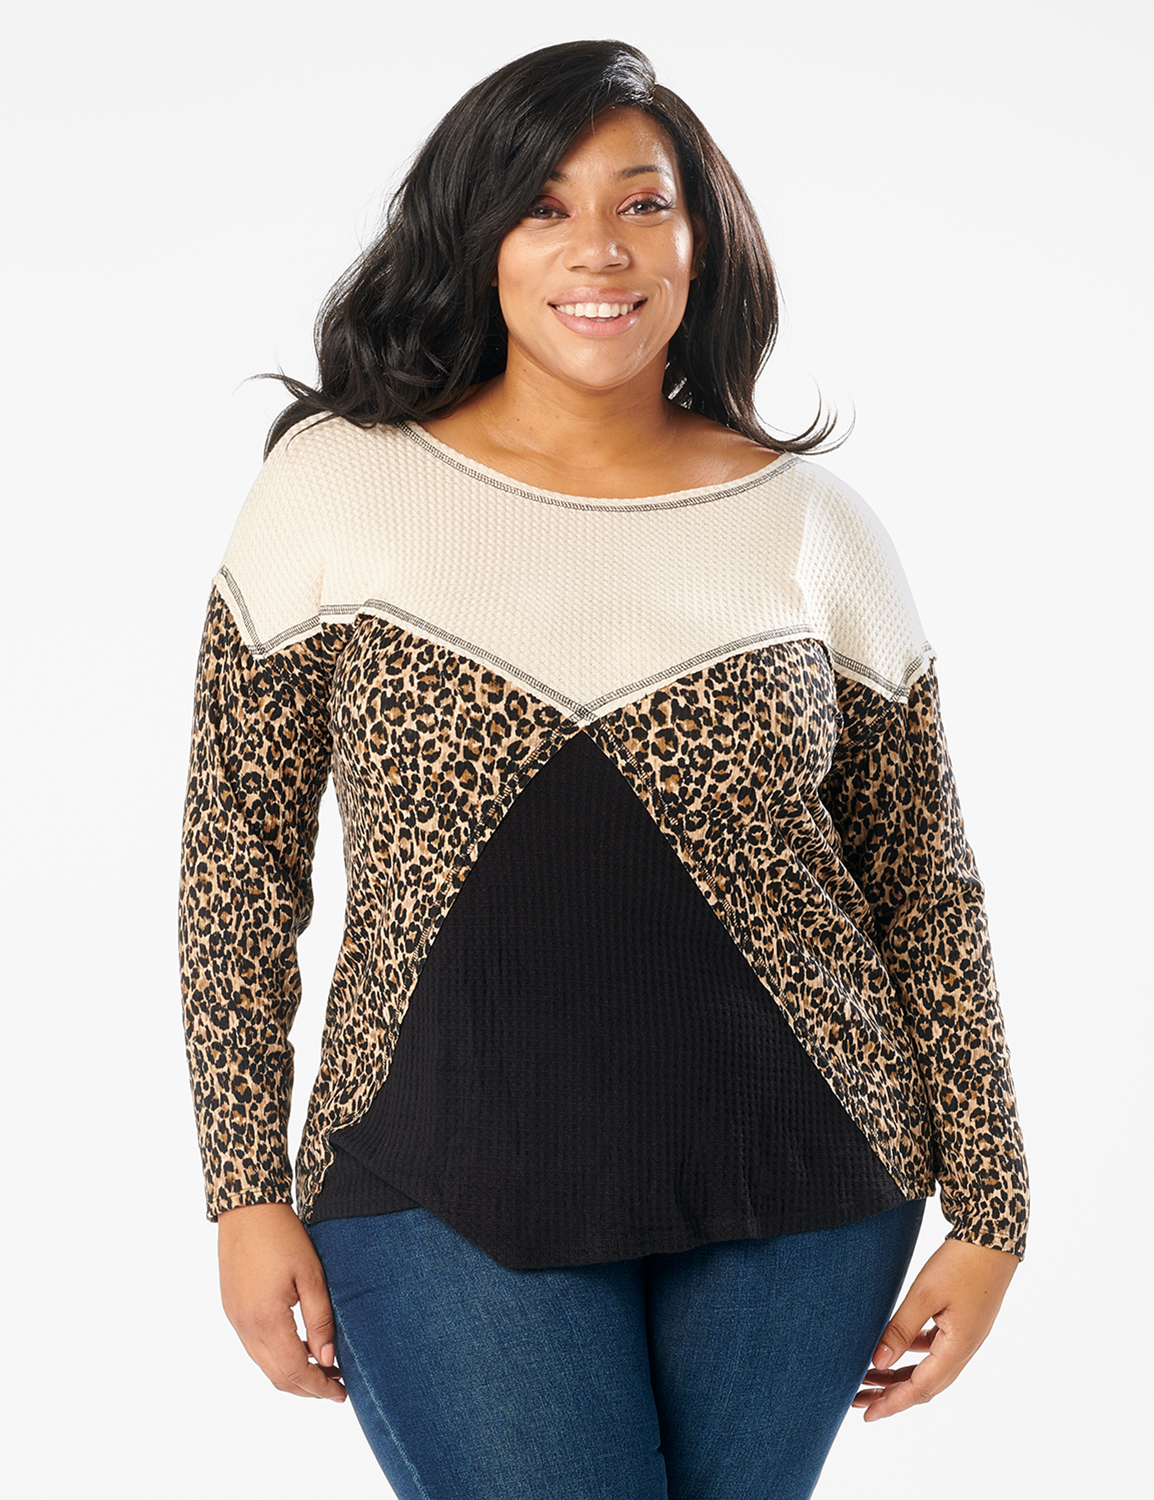 Mixed Animal Thermal Print Knit Top - Plus -Oatmeal - Front